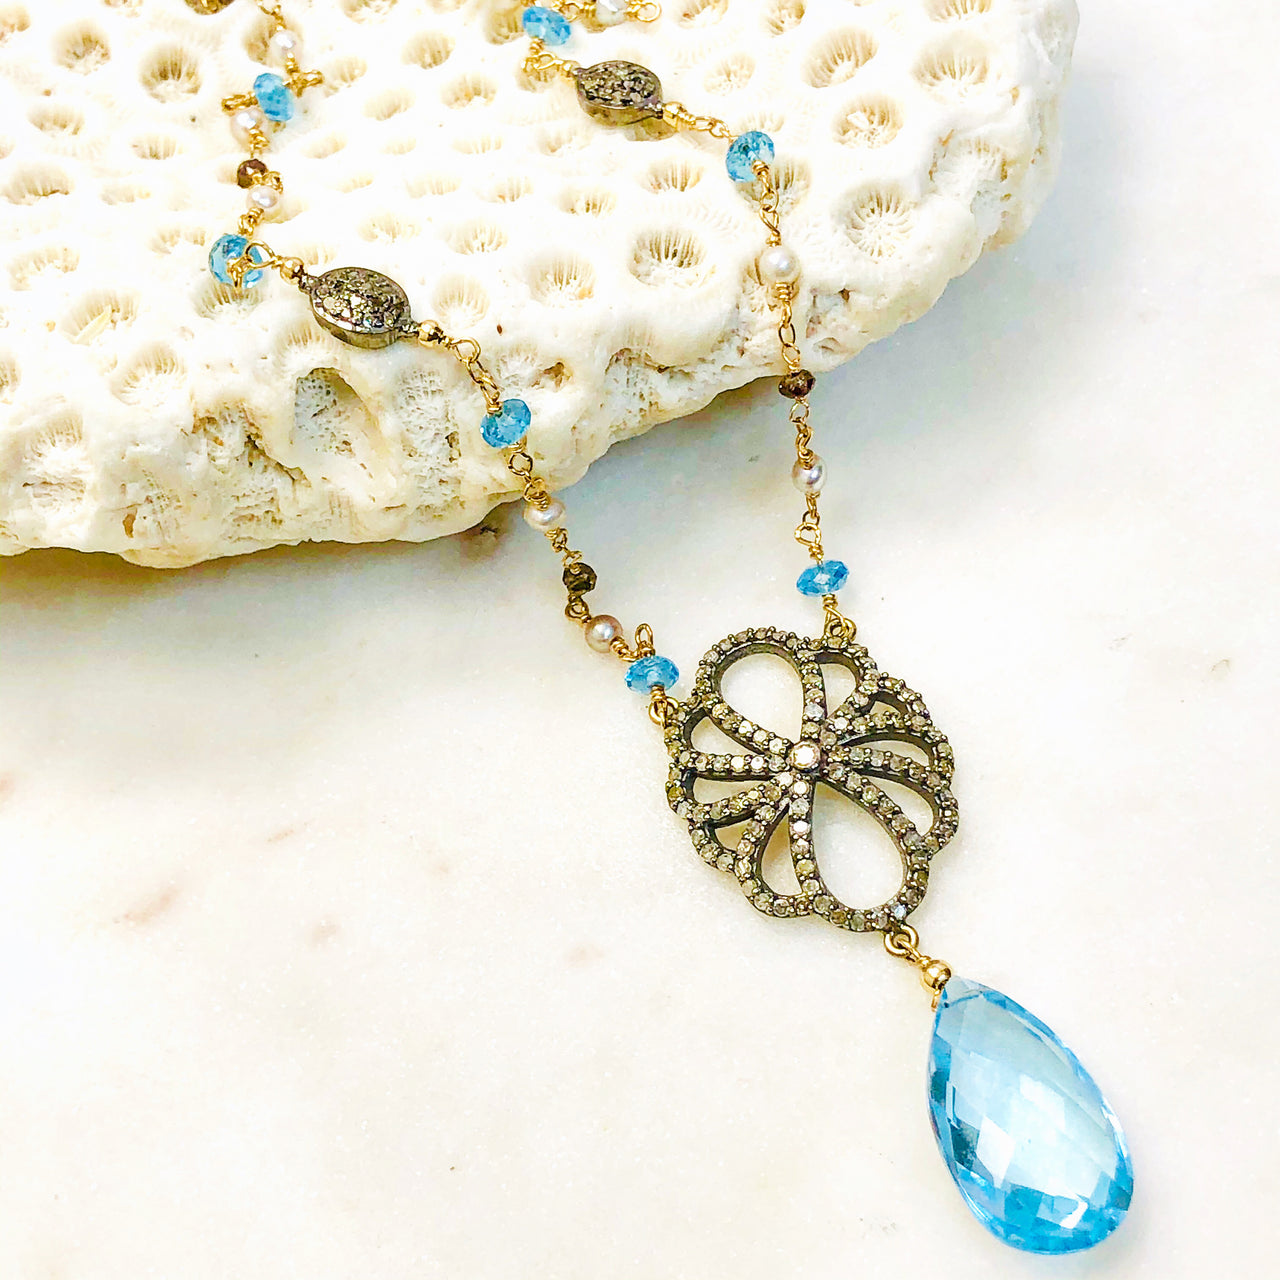 14K Yellow Gold/Sterling Silver Blue Topaz, Diamond and pearl Necklace.